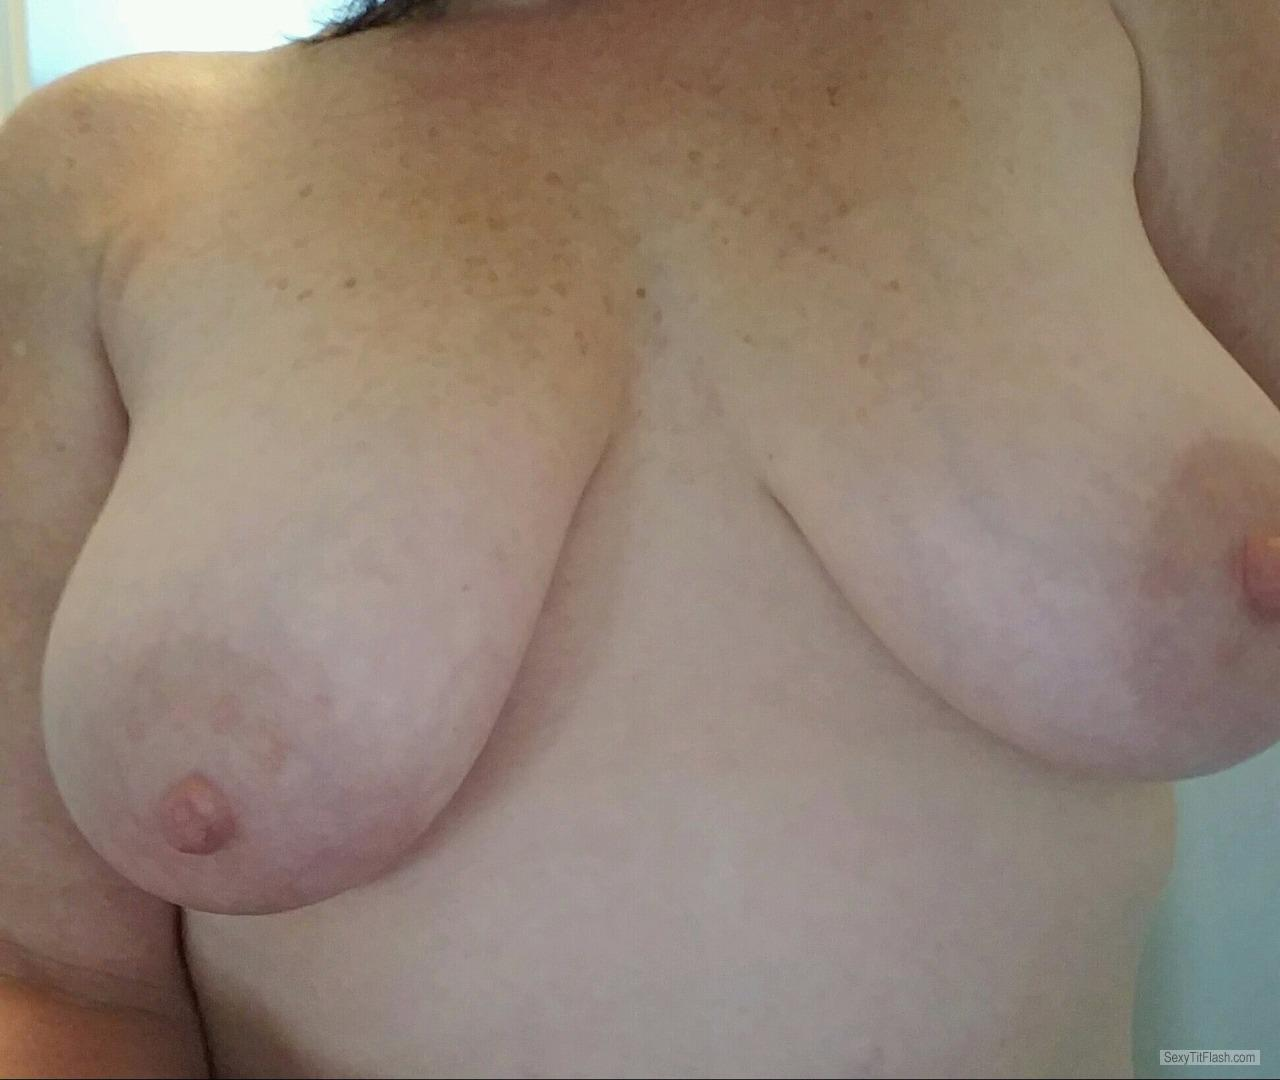 My Big Tits Selfie by Cheryl66